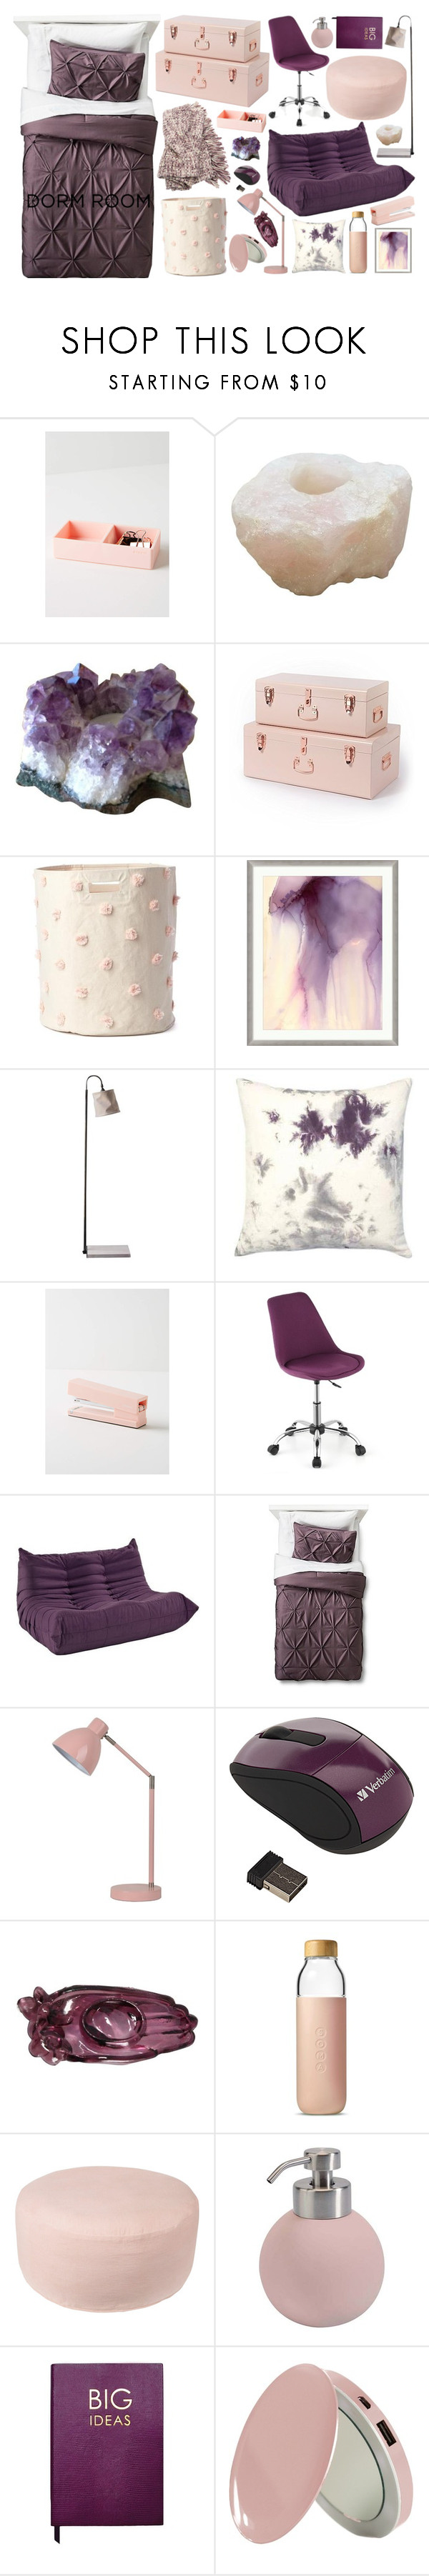 Threshold home decor shop for threshold home decor on polyvore -  Amethyst And Rose Quartz By Rachael Aislynn Liked On Polyvore Featuring Interior